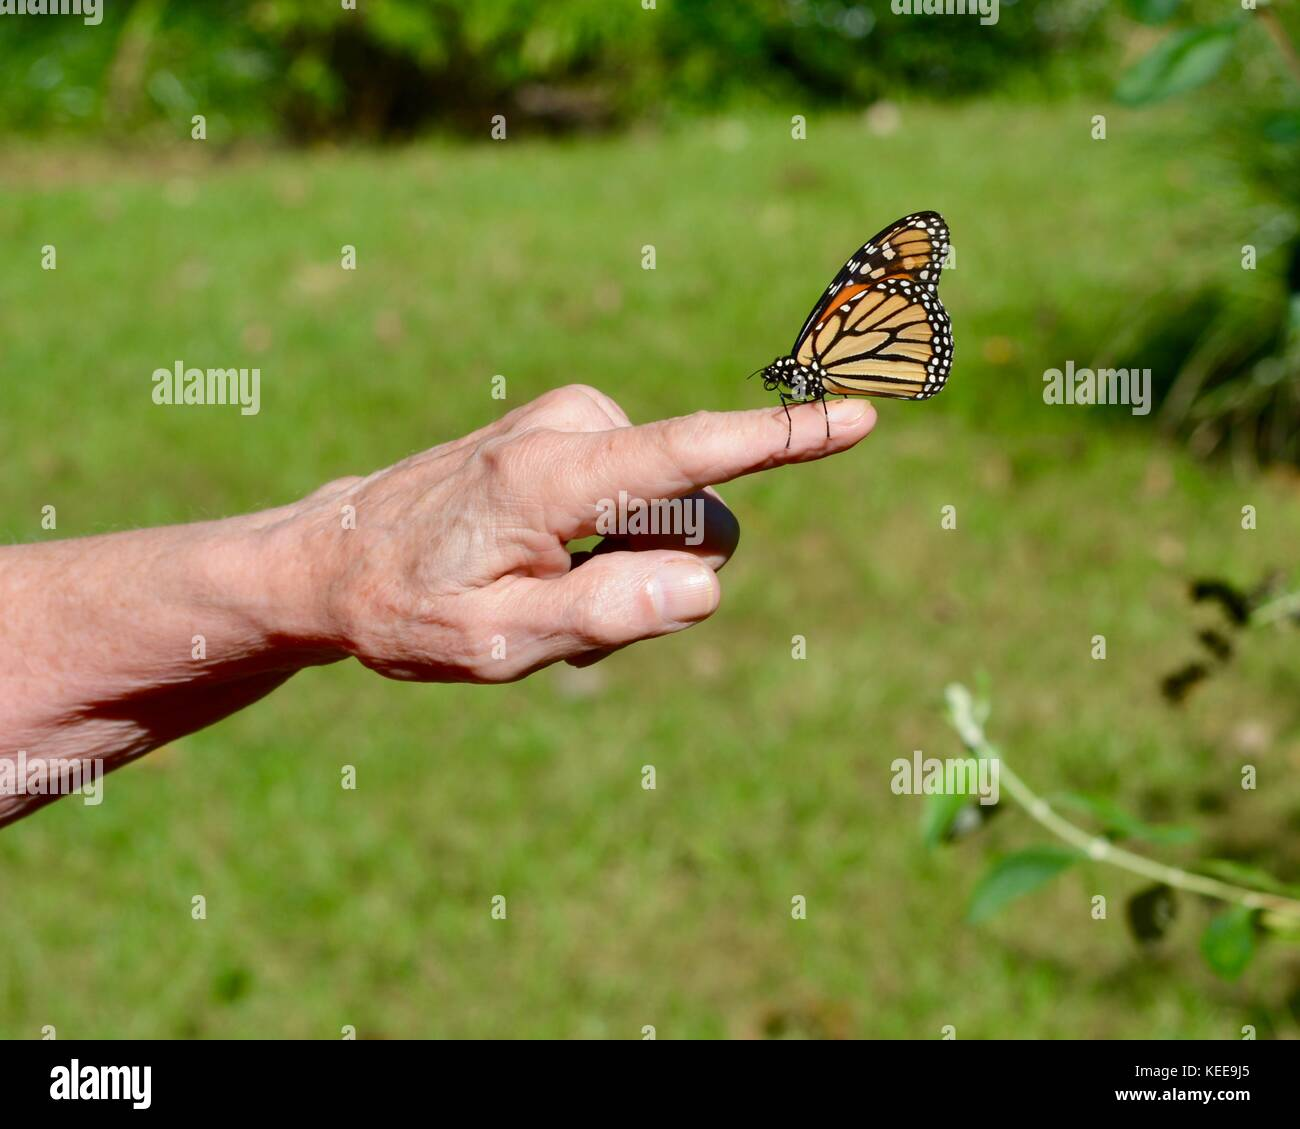 5cefb7057 Monarch butterfly on a finger Stock Photo: 163813389 - Alamy